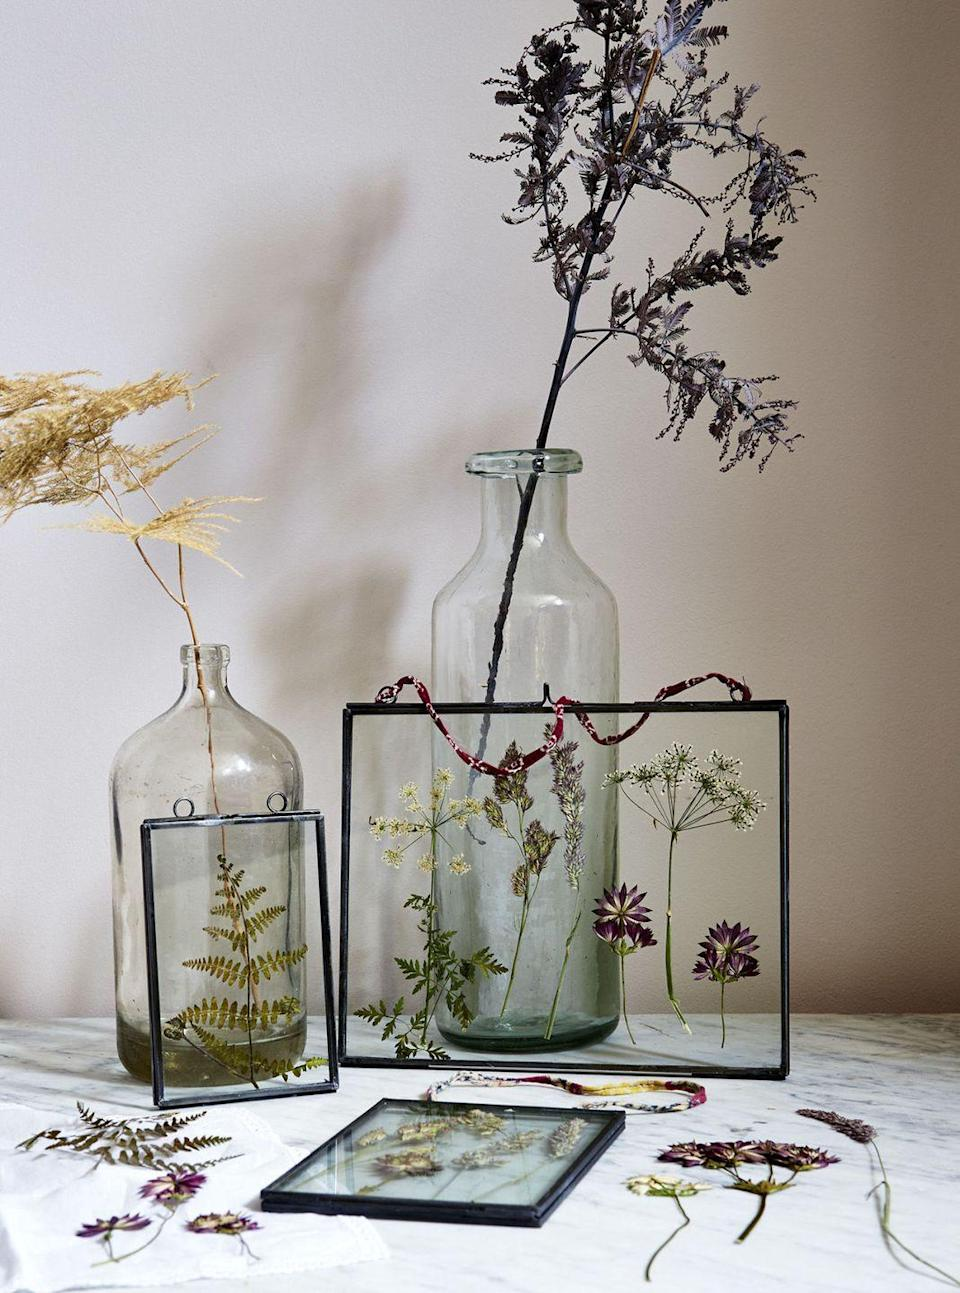 """<p>Wild flowers can easily be preserved and made into a beautiful <a href=""""https://go.redirectingat.com?id=74968X1596630&url=https%3A%2F%2Fwww.etsy.com%2Flisting%2F635208924%2Fbronze-picture-frames-hanging-on-walls&sref=https%3A%2F%2Fwww.countryliving.com%2Fdiy-crafts%2Ftips%2Fg645%2Fcrafty-christmas-presents-ideas%2F"""" rel=""""nofollow noopener"""" target=""""_blank"""" data-ylk=""""slk:glass framed display"""" class=""""link rapid-noclick-resp"""">glass framed display</a> for a flower-loving friend. </p><p><strong>Get the tutorial at <a href=""""http://www.countryliving.co.uk/create/craft/how-to/a110/learn-the-art-of-flower-pressing/"""" rel=""""nofollow noopener"""" target=""""_blank"""" data-ylk=""""slk:Country Living UK"""" class=""""link rapid-noclick-resp""""><em>Country Living UK</em></a>.</strong> </p><p><strong><a class=""""link rapid-noclick-resp"""" href=""""https://go.redirectingat.com?id=74968X1596630&url=https%3A%2F%2Fwww.etsy.com%2Flisting%2F635208924%2Fbronze-picture-frames-hanging-on-walls&sref=https%3A%2F%2Fwww.countryliving.com%2Fdiy-crafts%2Ftips%2Fg645%2Fcrafty-christmas-presents-ideas%2F"""" rel=""""nofollow noopener"""" target=""""_blank"""" data-ylk=""""slk:SHOP SPECIMEN FRAME"""">SHOP SPECIMEN FRAME</a></strong></p>"""